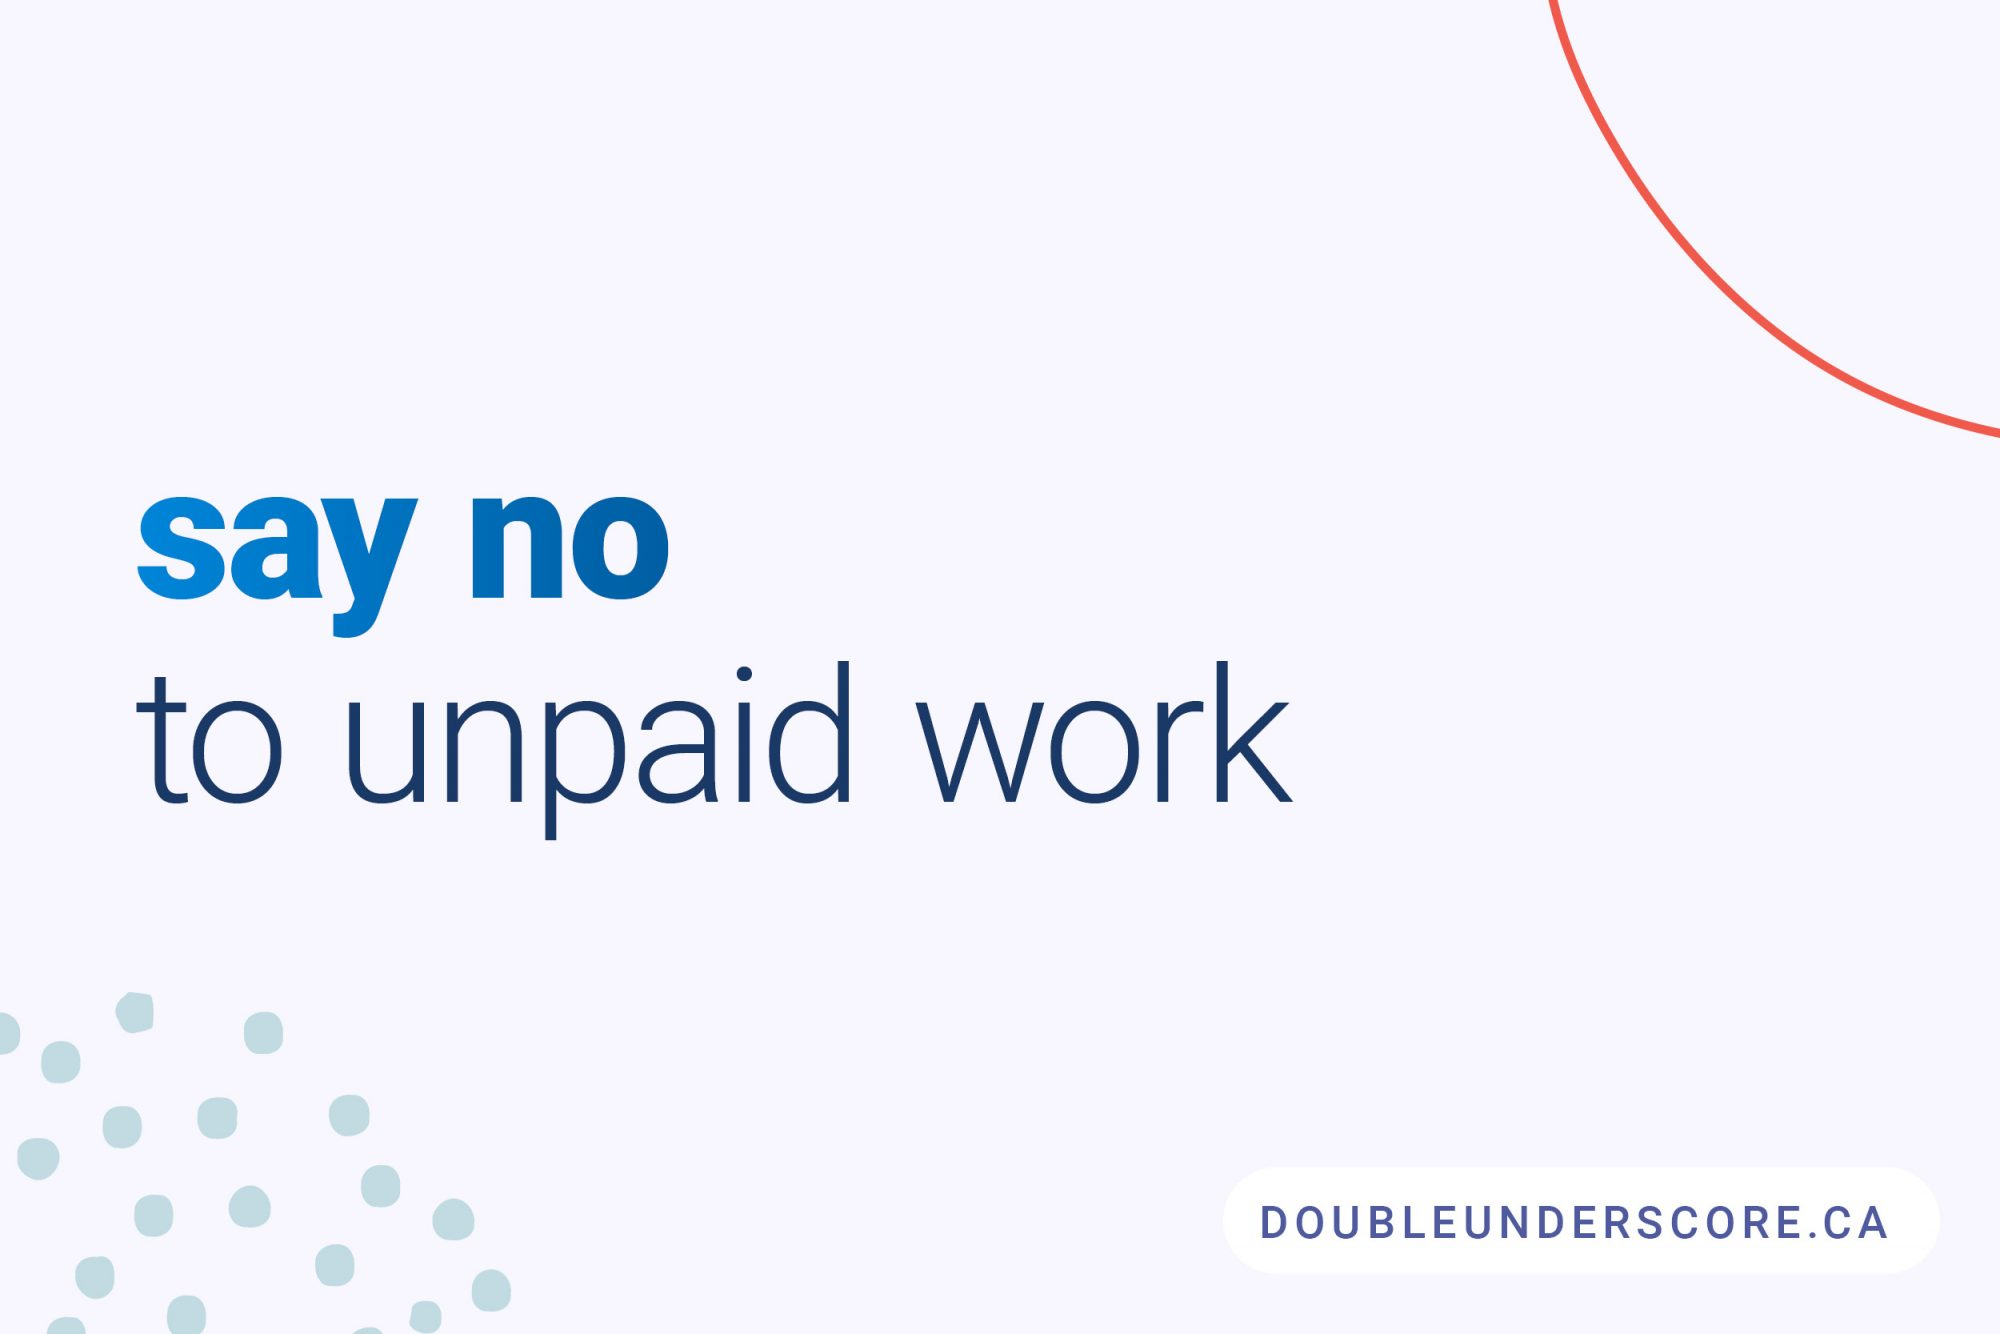 How to Say no to unpaid work